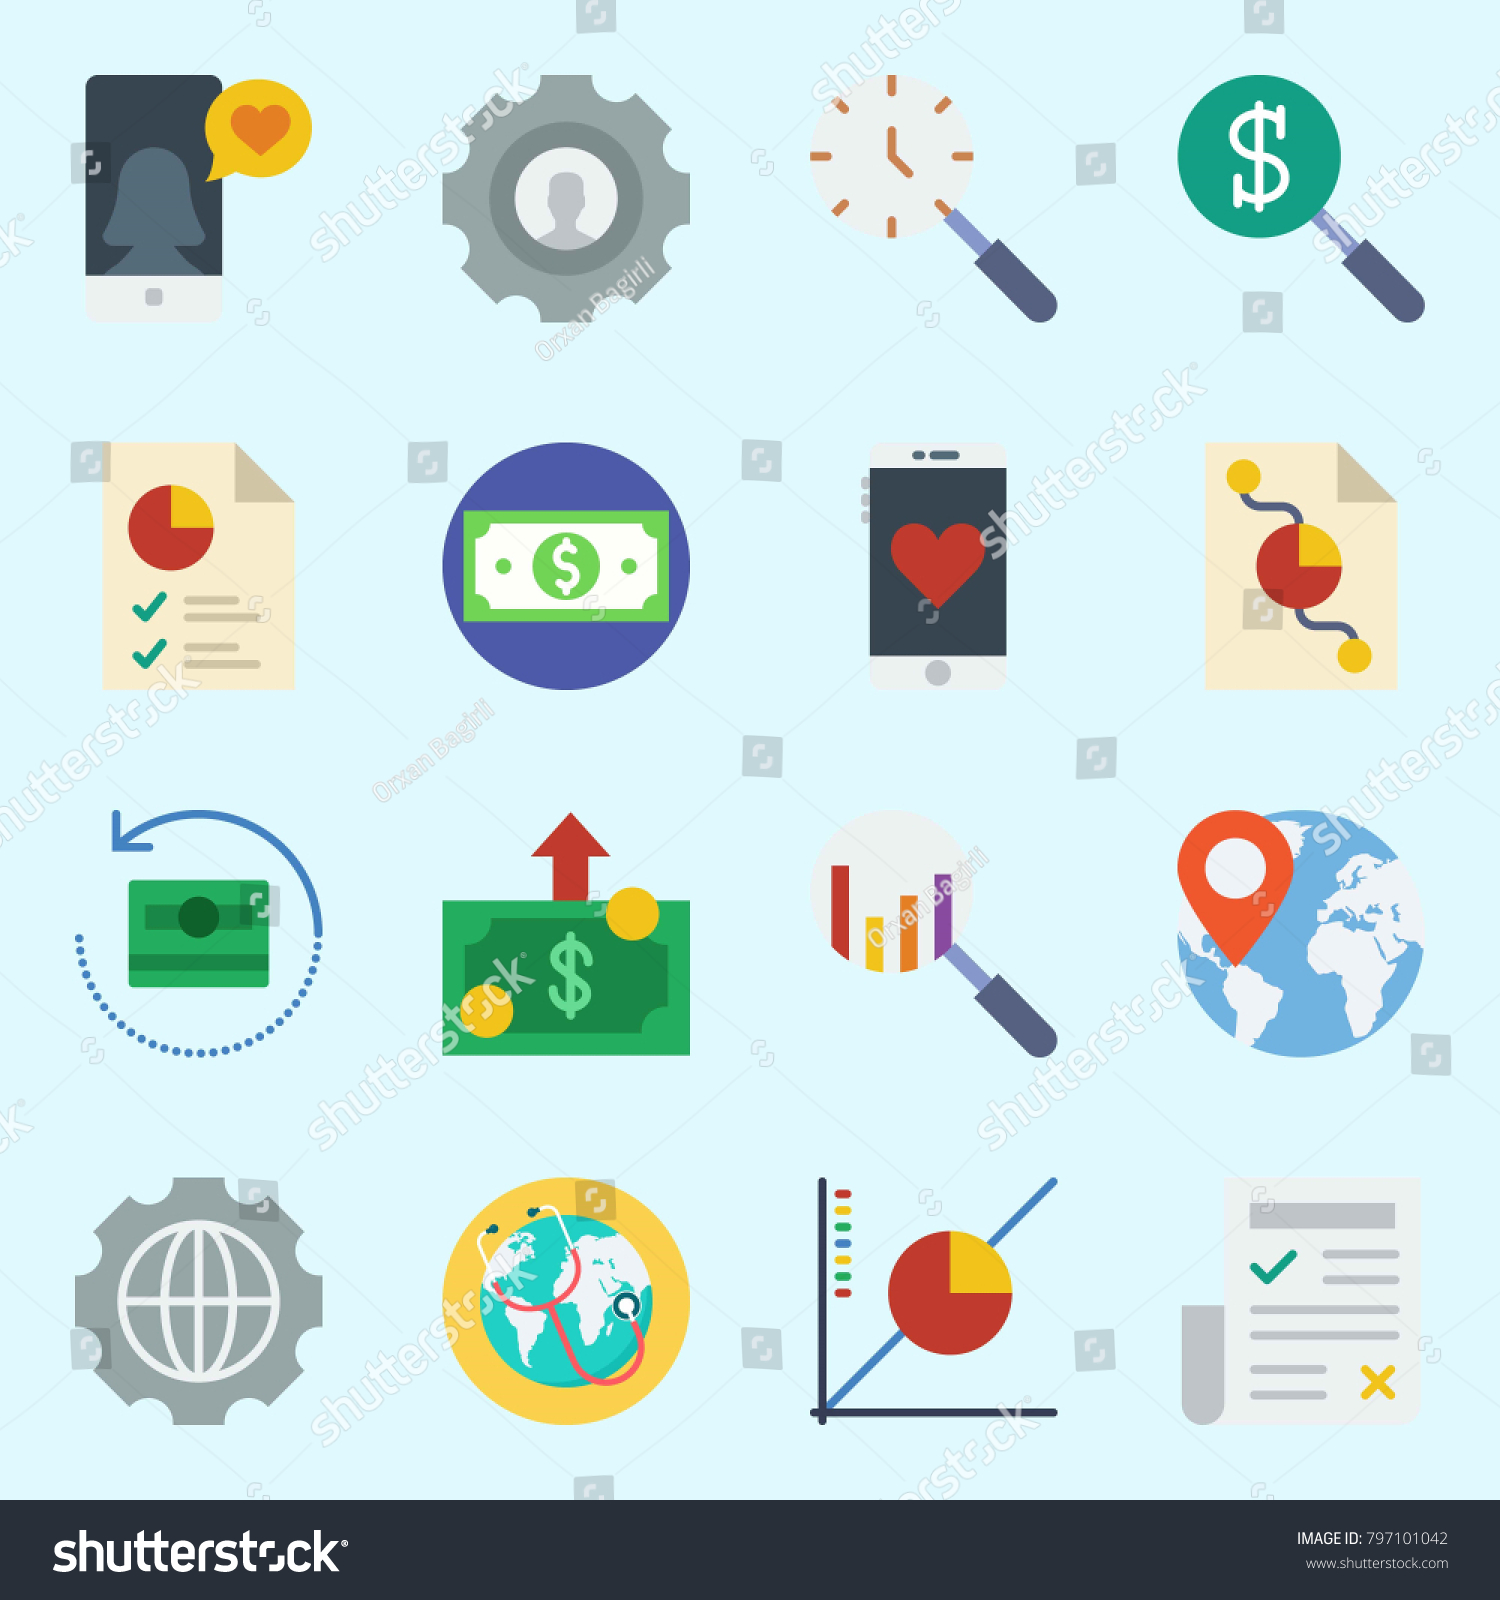 Icons set about marketing pie chart stock vector 797101042 icons set about marketing with pie chart smartphone search newspaper line nvjuhfo Image collections